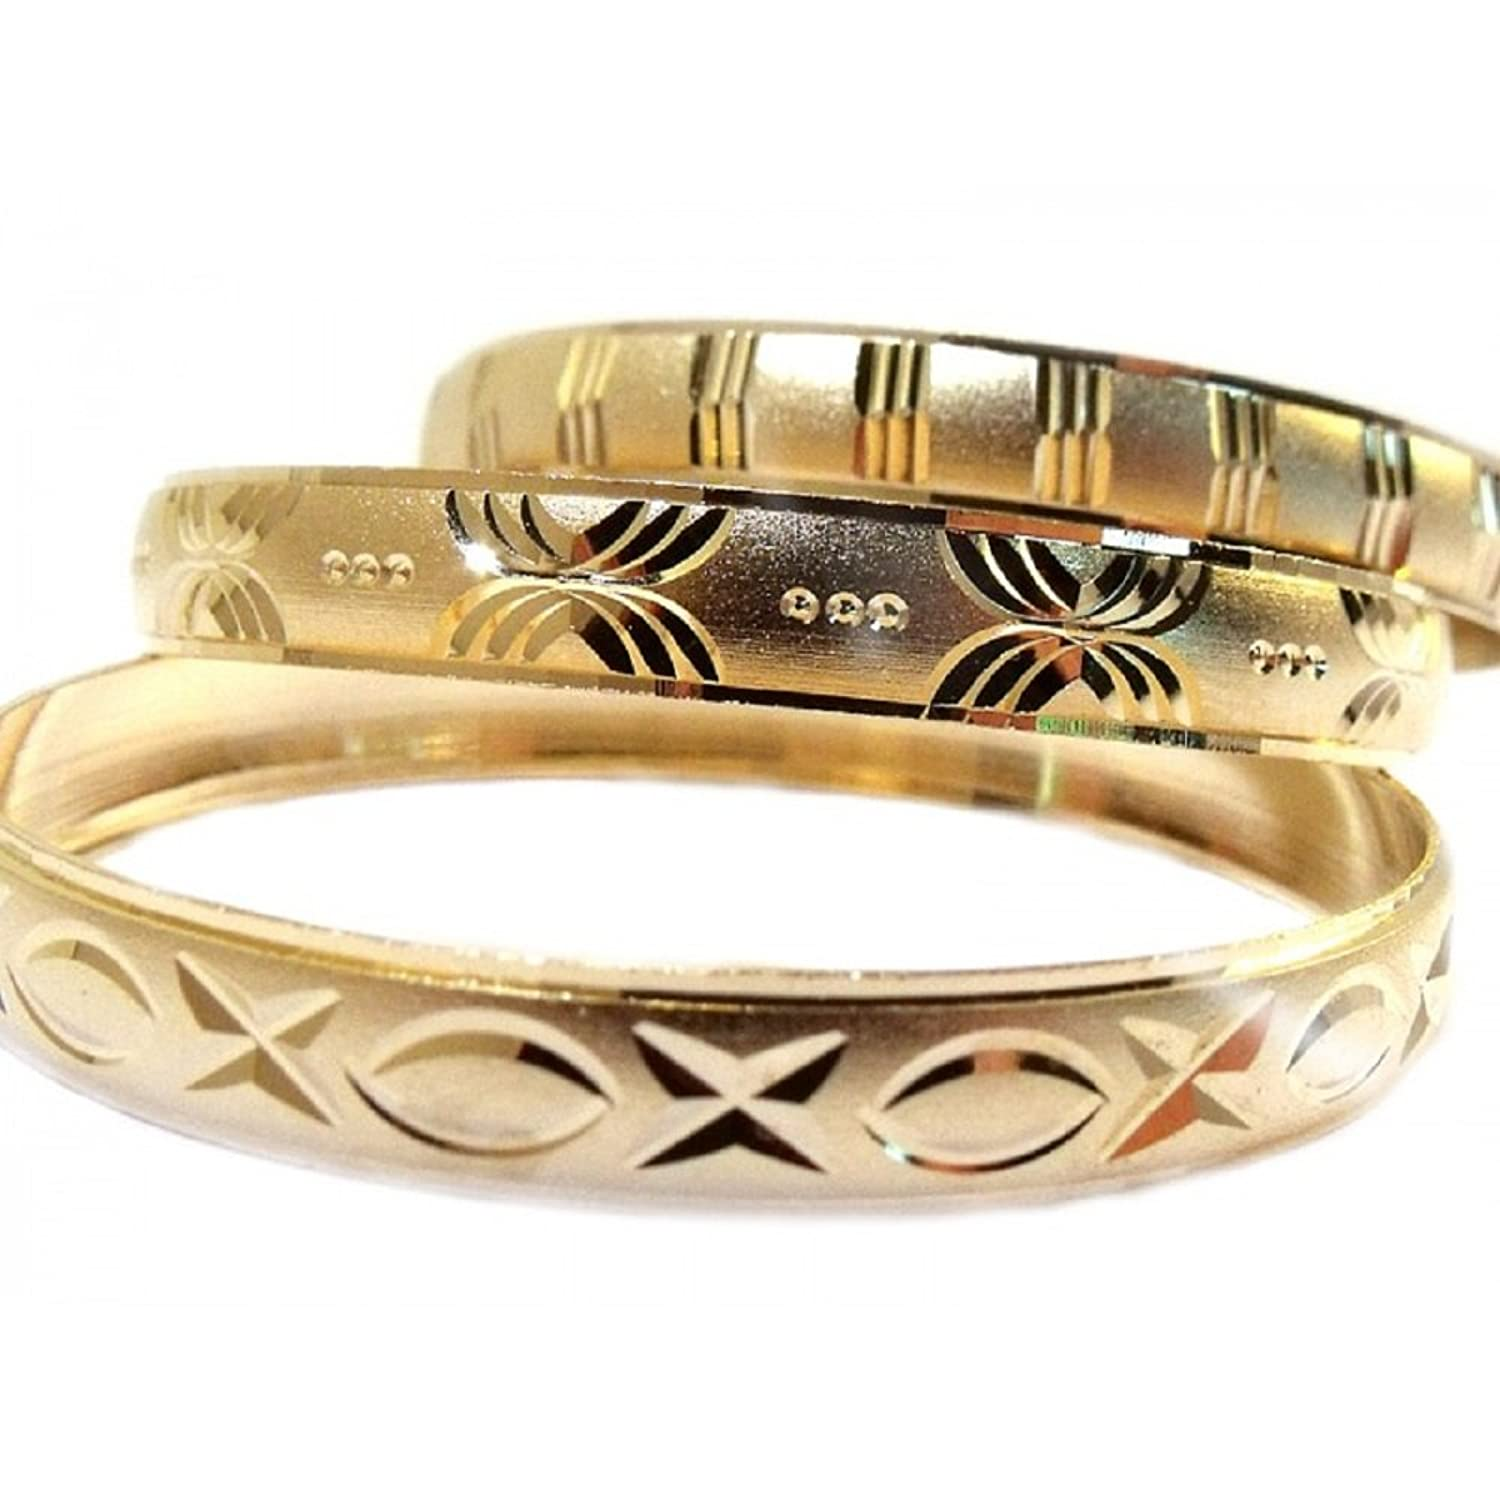 inexpensive bangles gold bracelet xc charm girls k bangle bracelets ecuatwitt